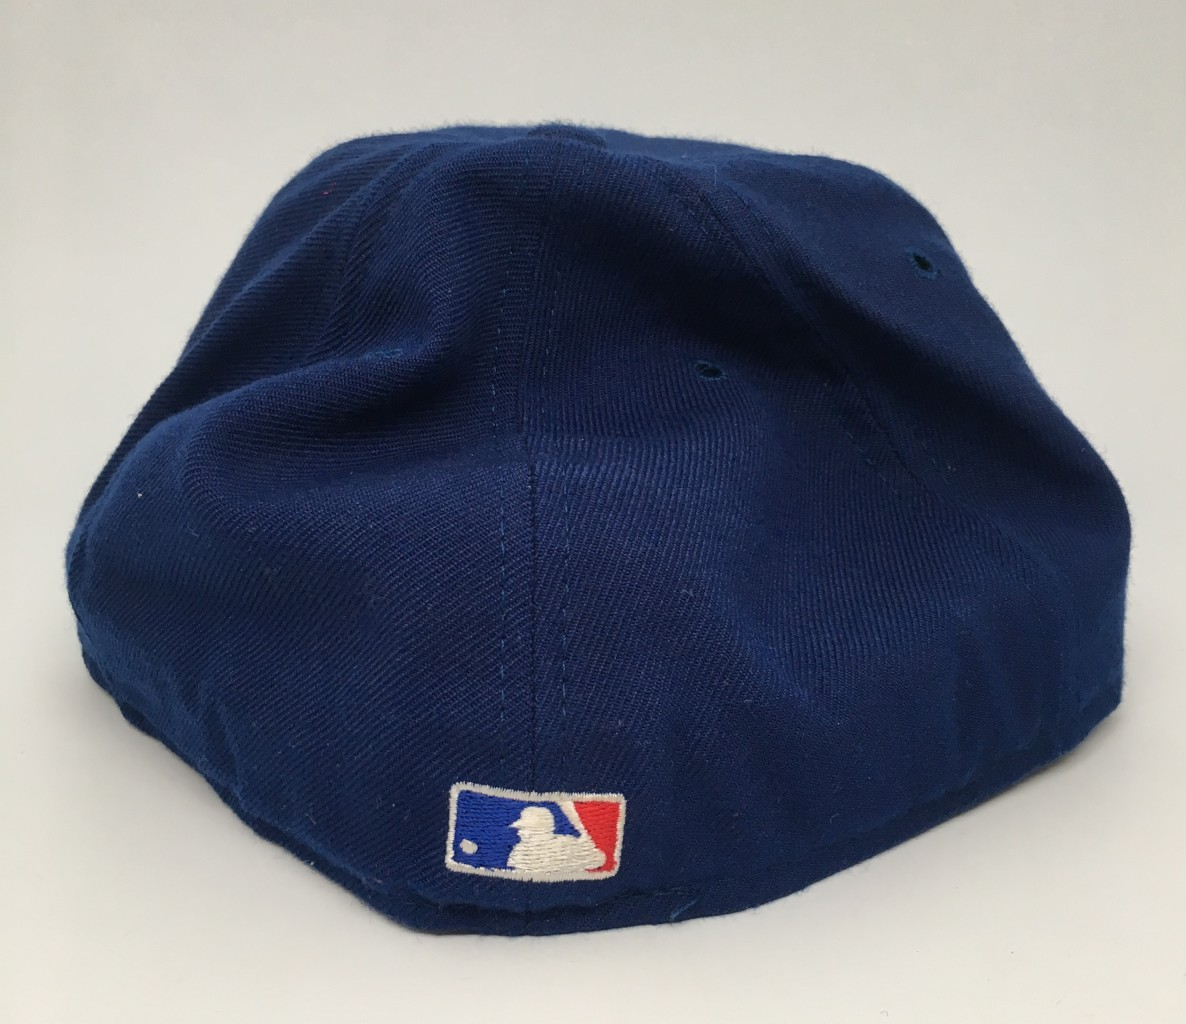 newest 58458 936f0 ... free shipping 1997 toronto blue jays new era authentic fitted hat size 7  1 2 0f613 low ...